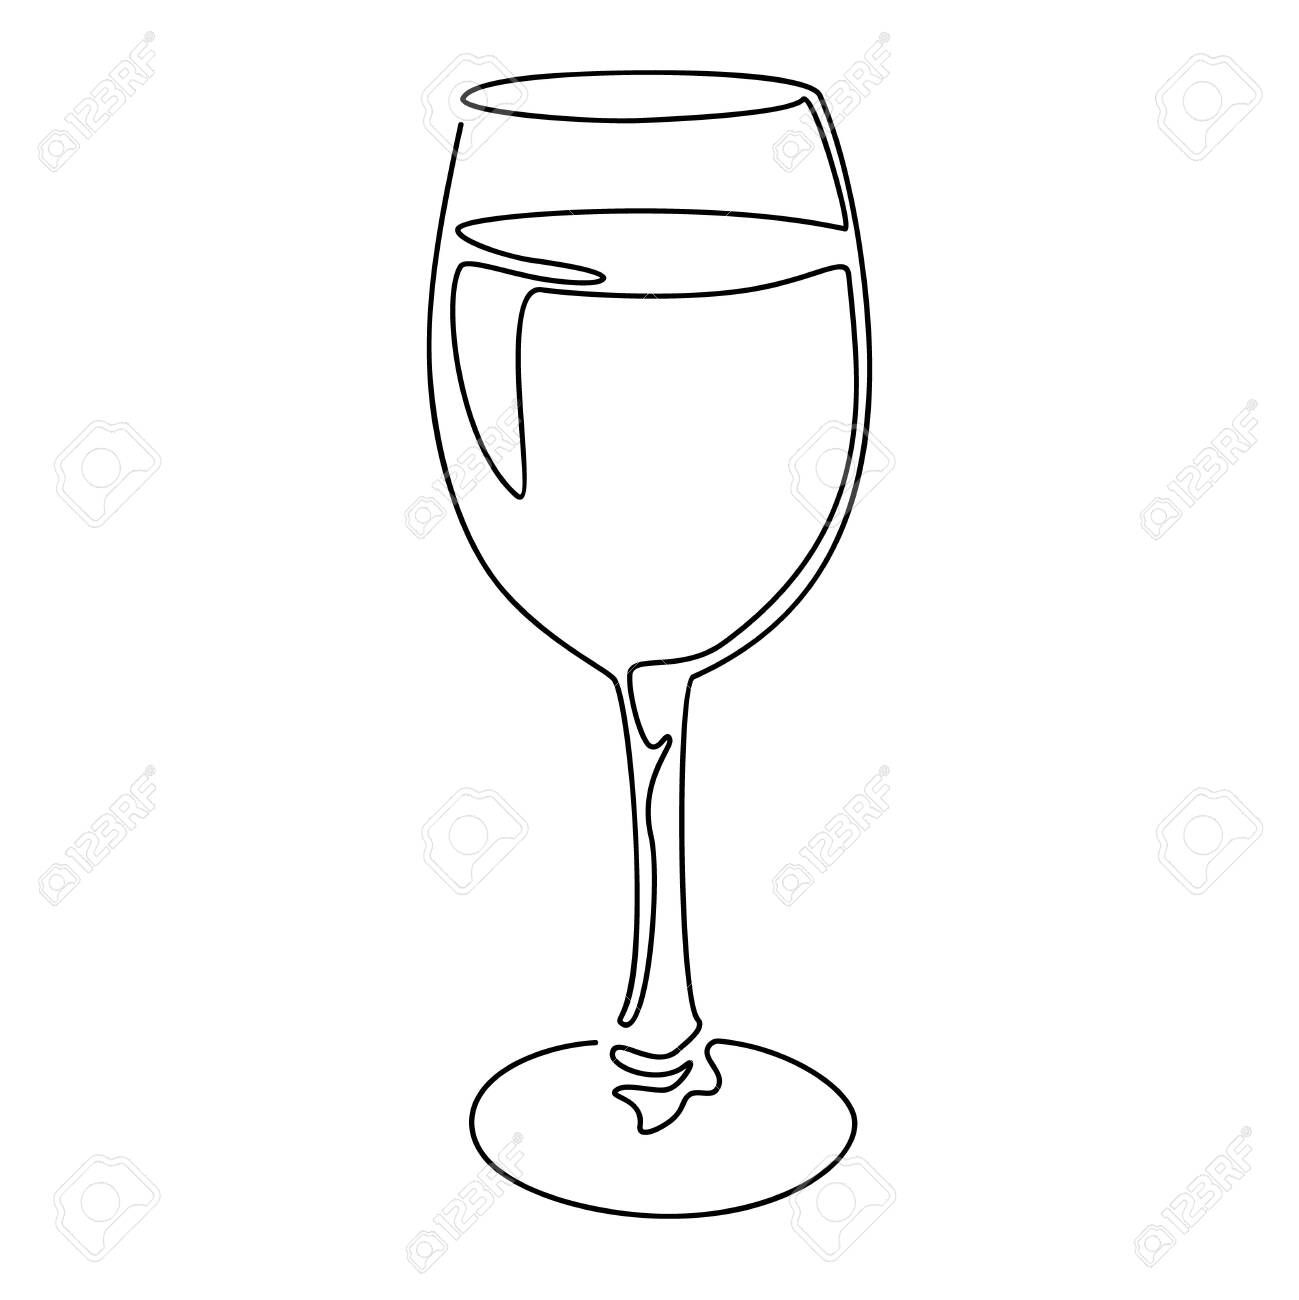 41+ Wine glass clipart black and white information